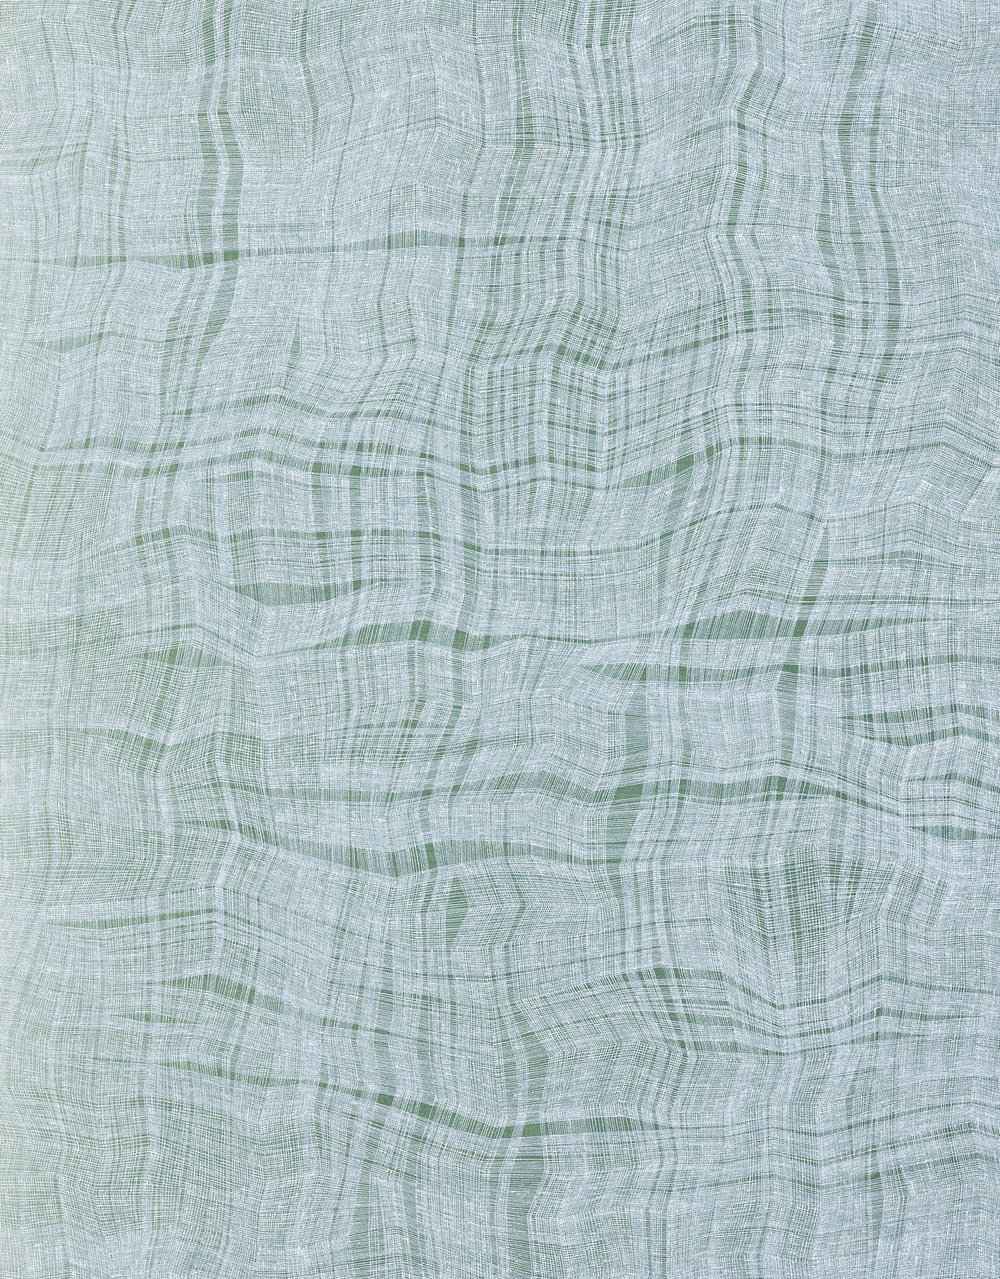 Karl Wiebke_White on Green Grey.jpg